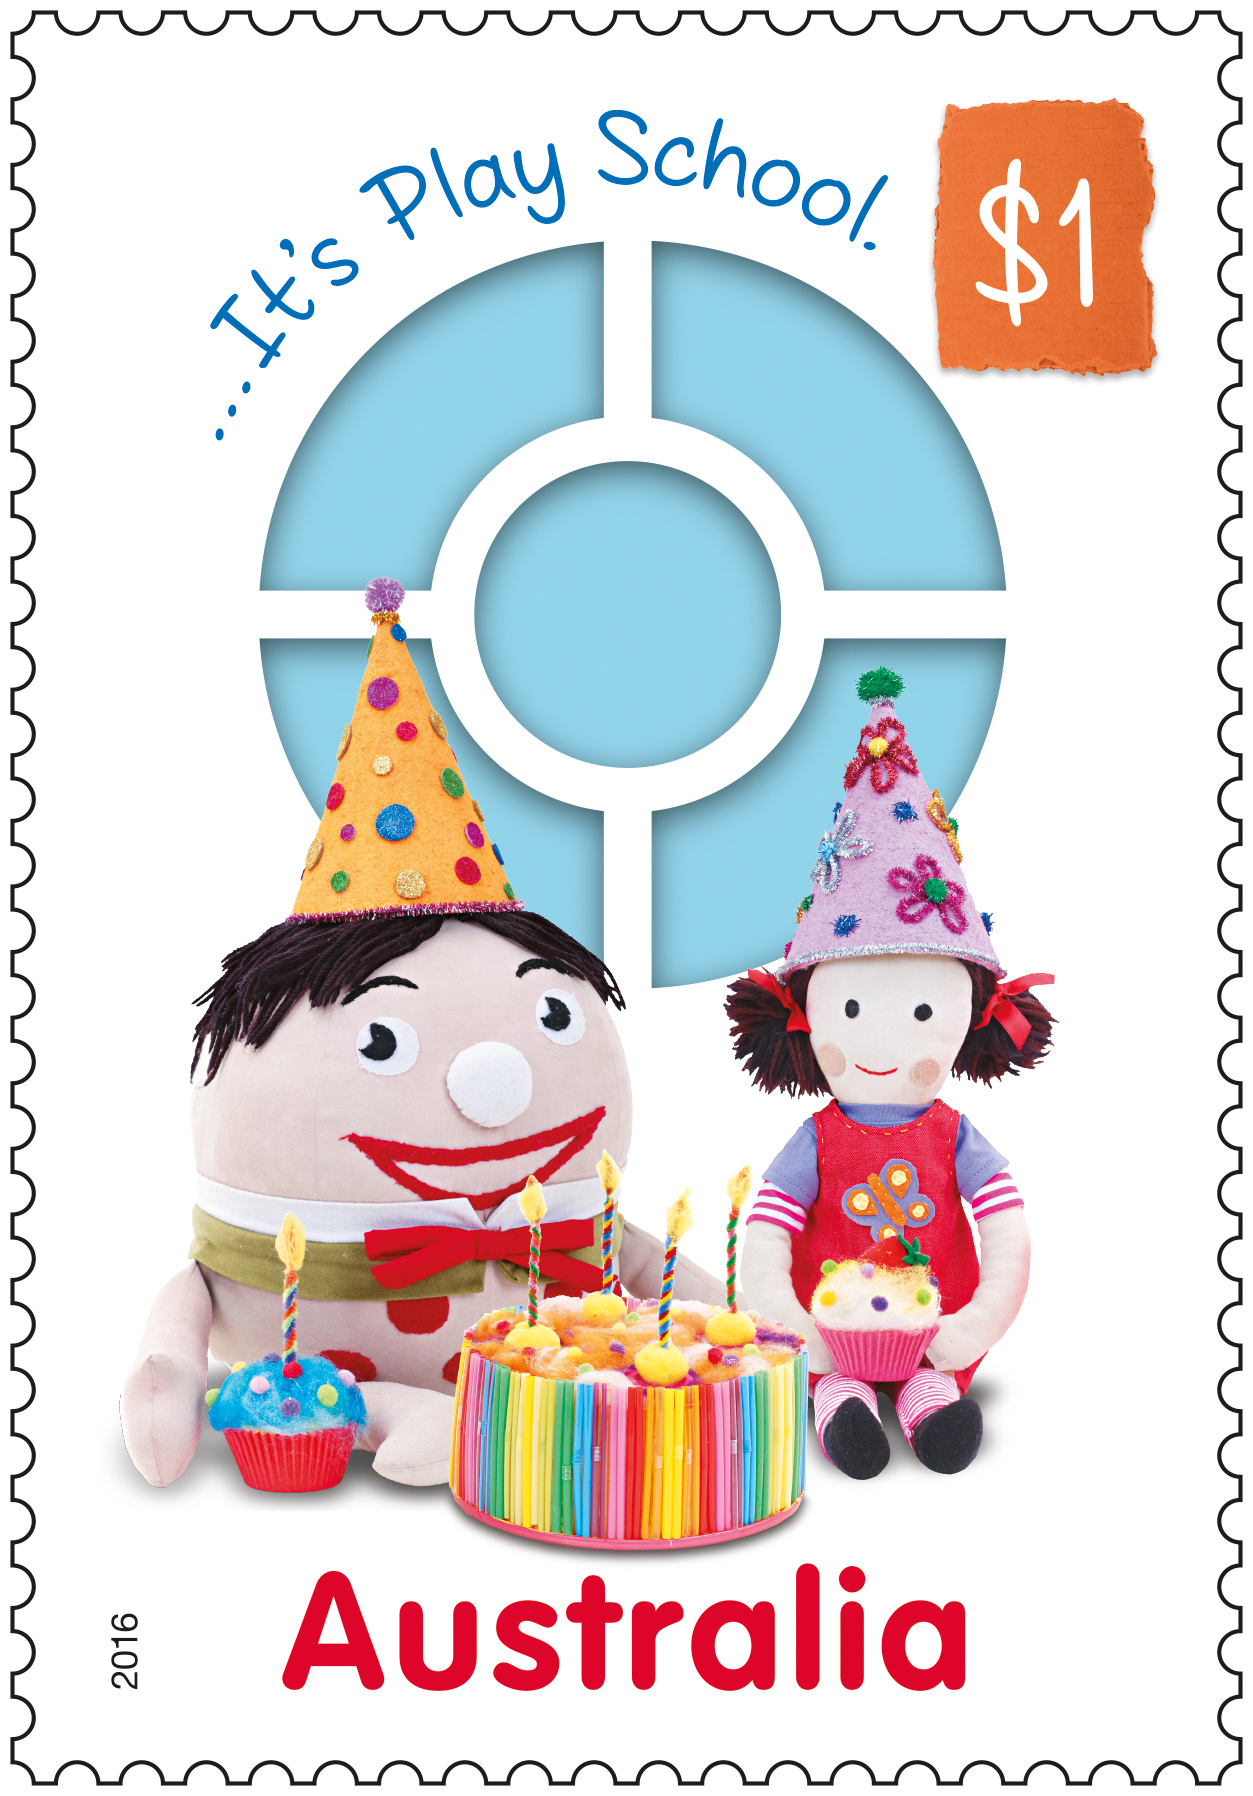 Australia Post celebrates 50 years of Play School